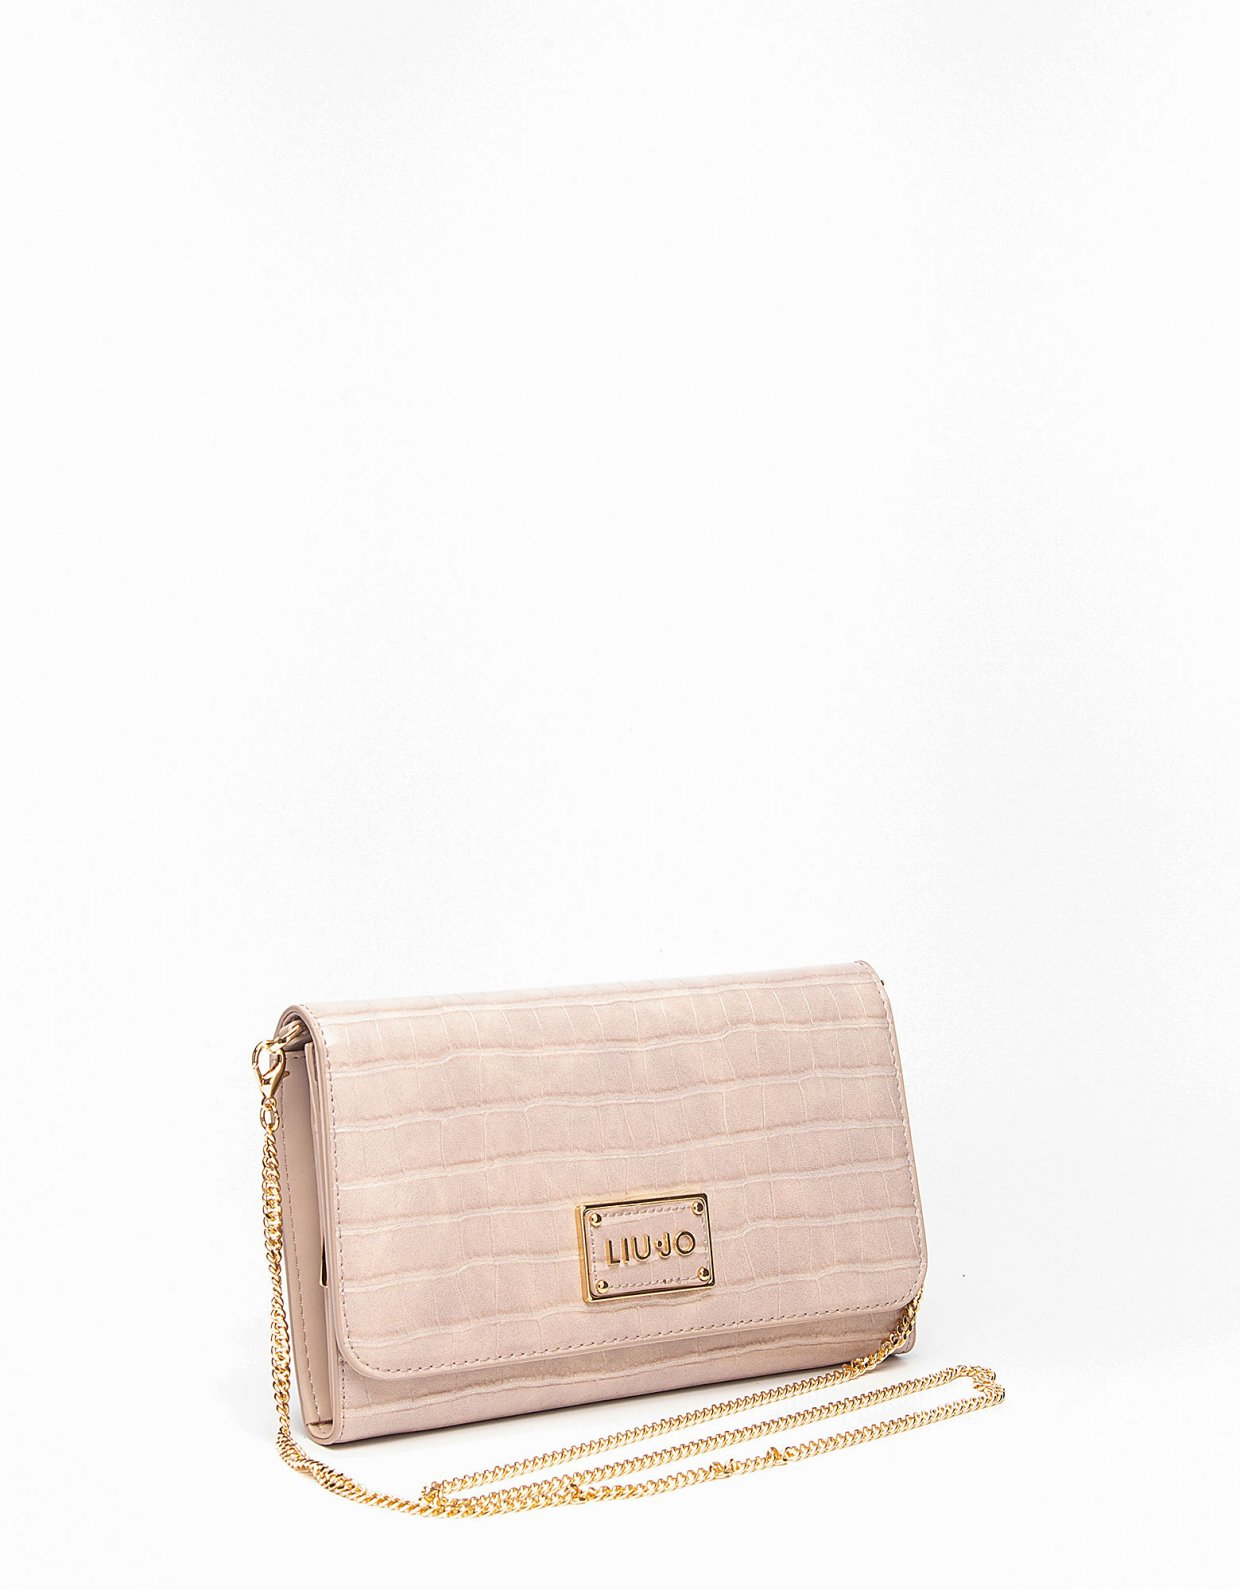 Liu Jo Crossbody bag croco red sand